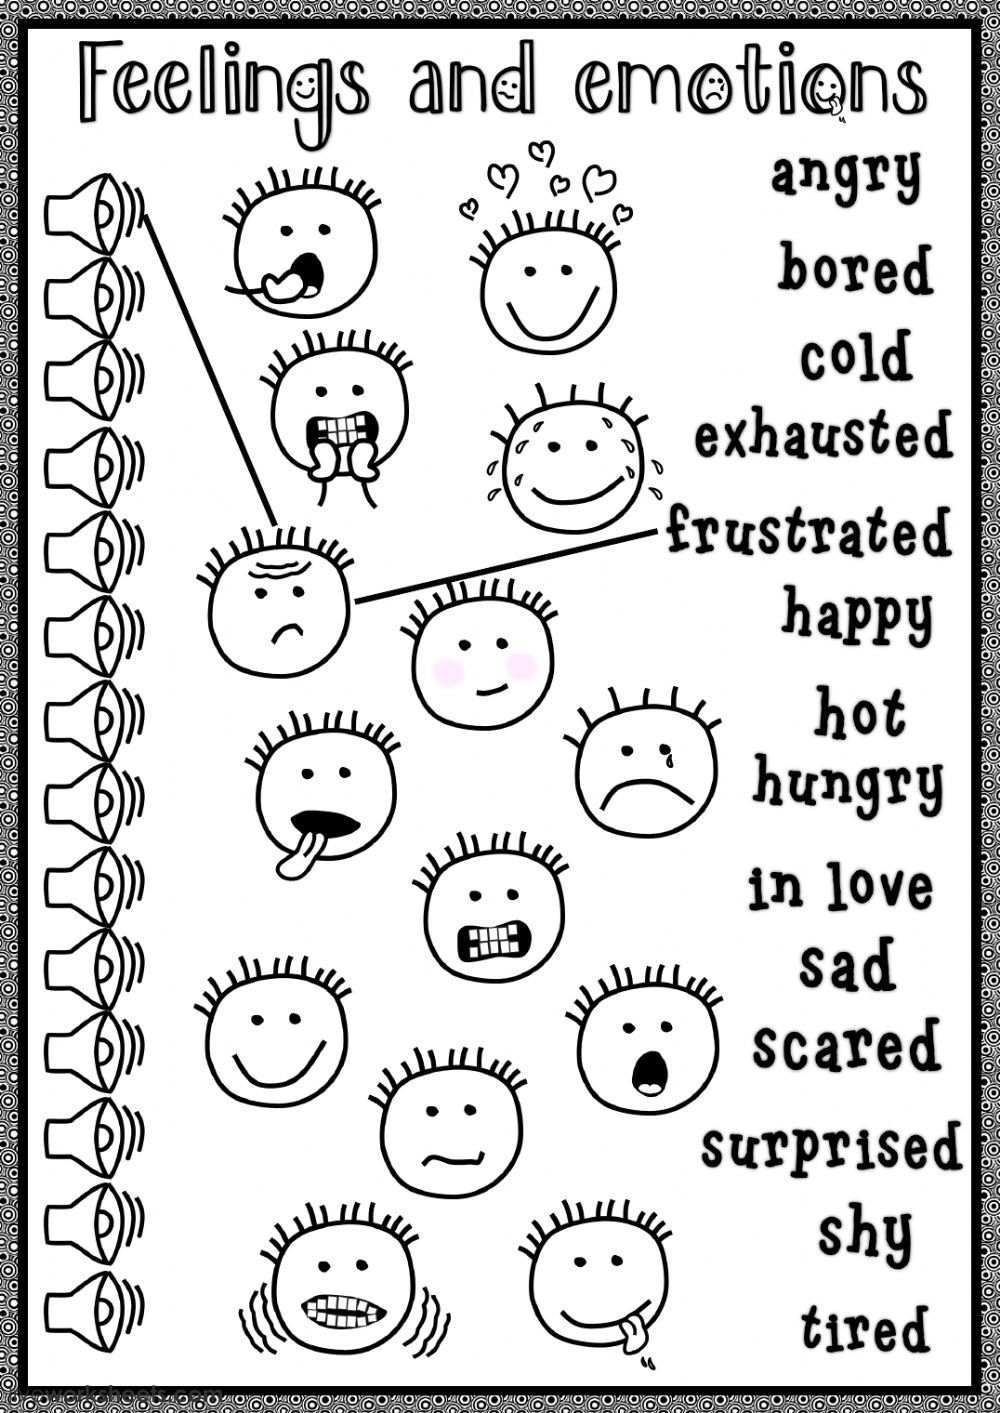 Feelings and emotions interactive and downloadable